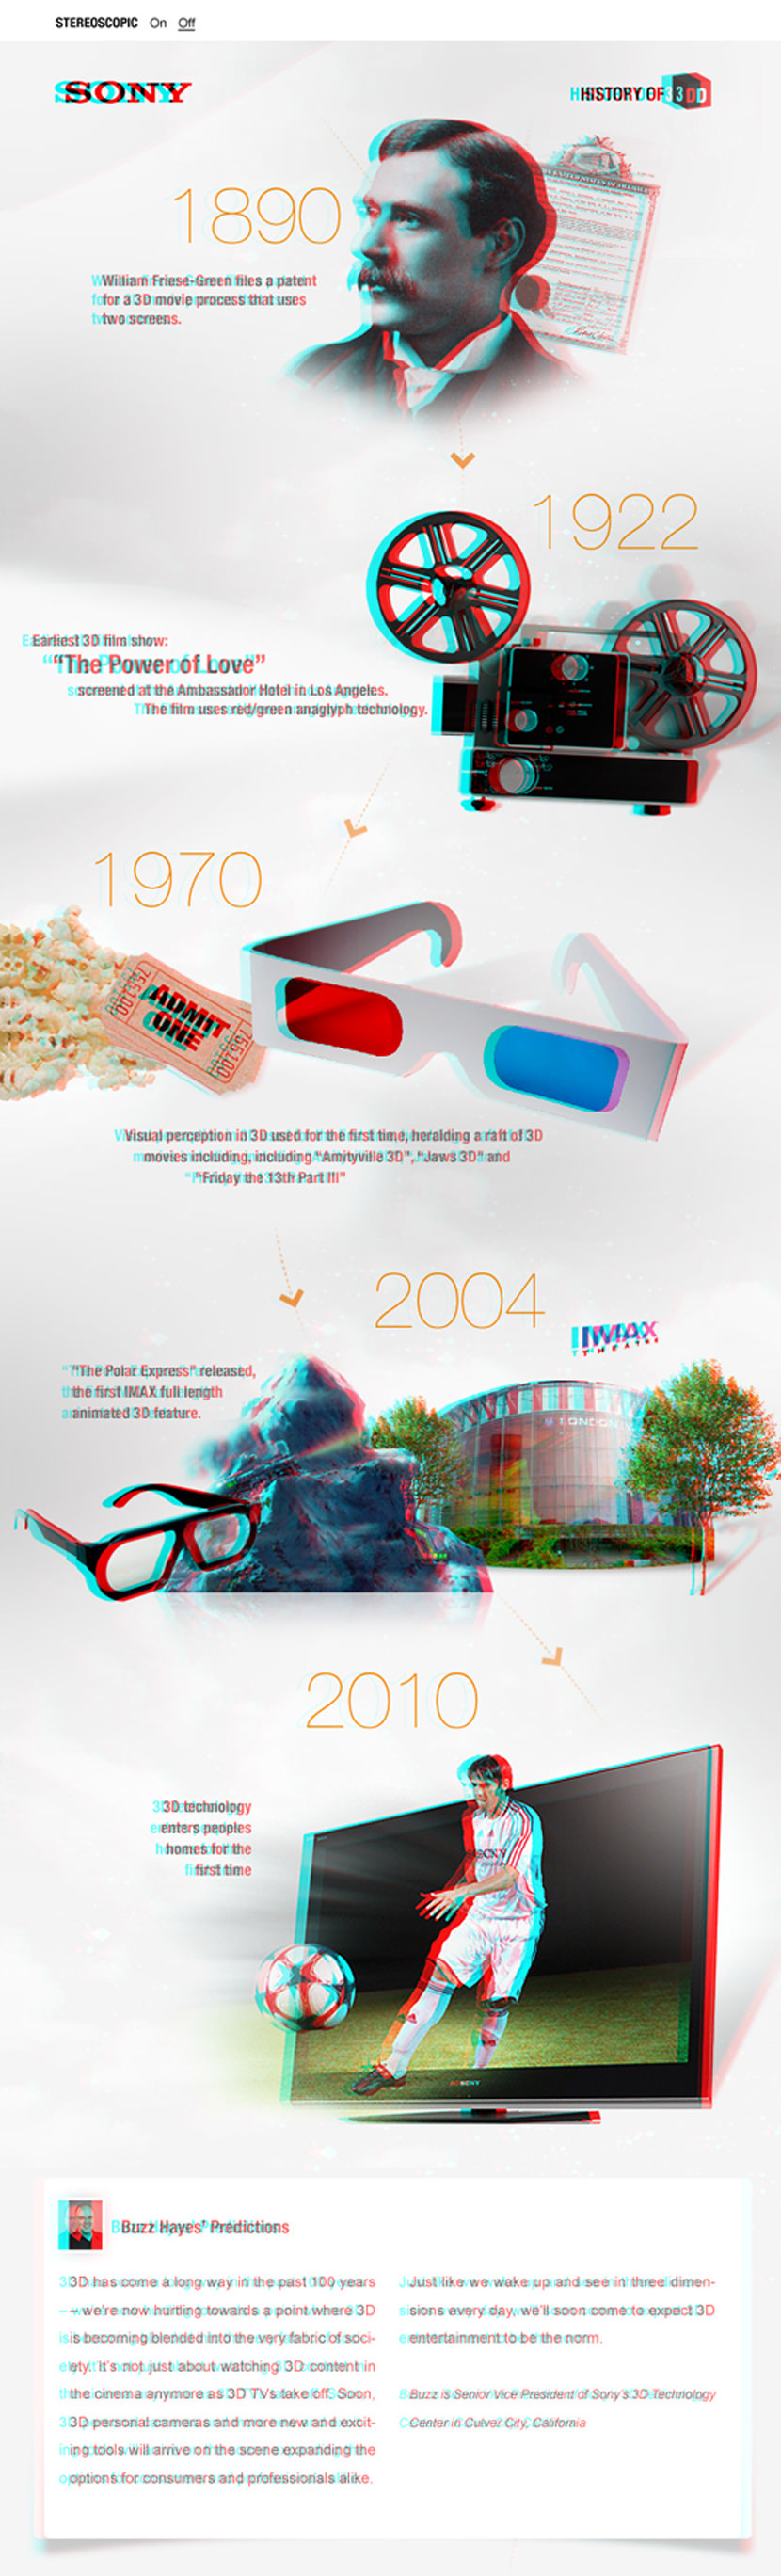 3d glasses tv movies test infographic